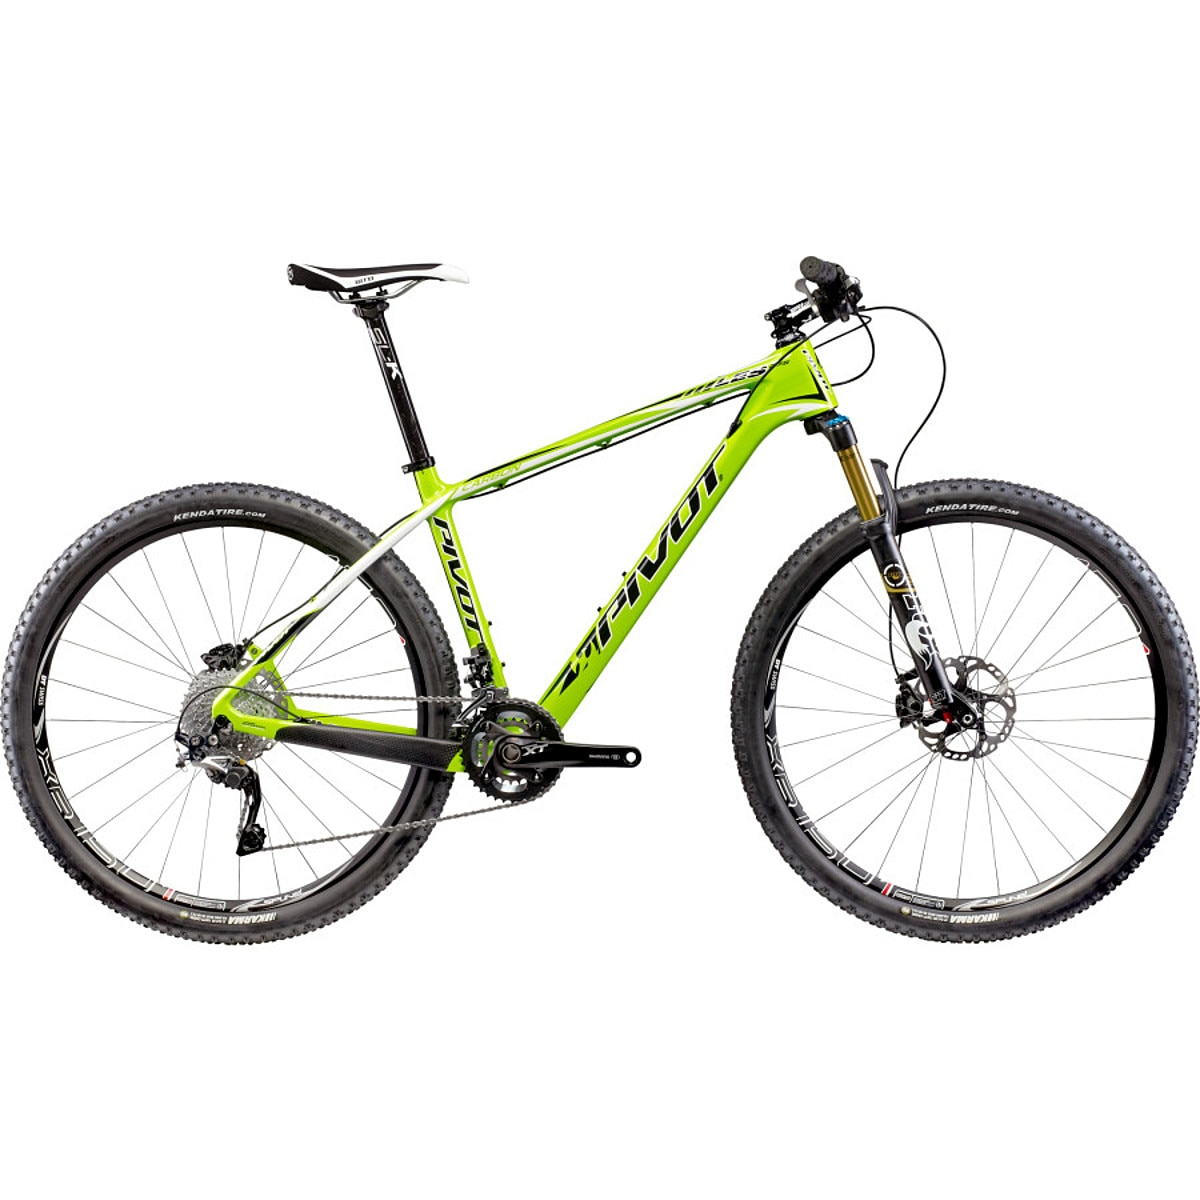 Pivot Les 27 5 Carbon Xt Complete Mountain Bike